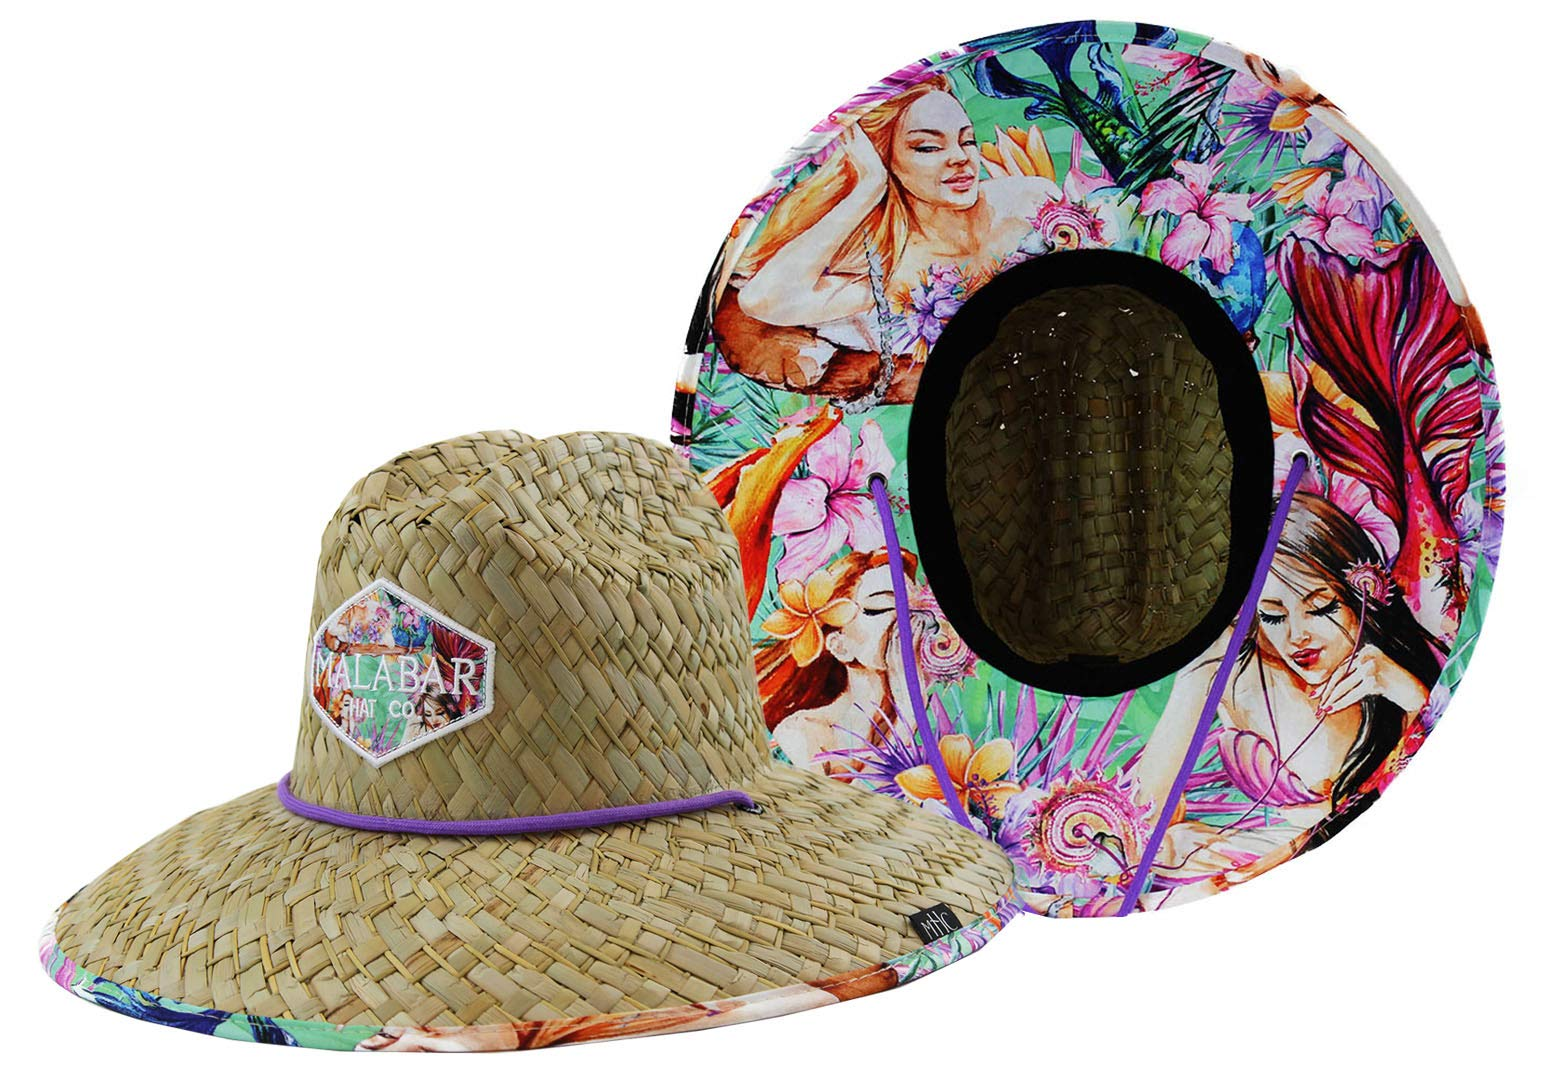 Woman''s Sun Hat Straw Hat with Fabric Print Lifeguard Hat Great for Beach Ocean, Cruise, and Outdoor, Malabar Hat Co. (Mermaid)